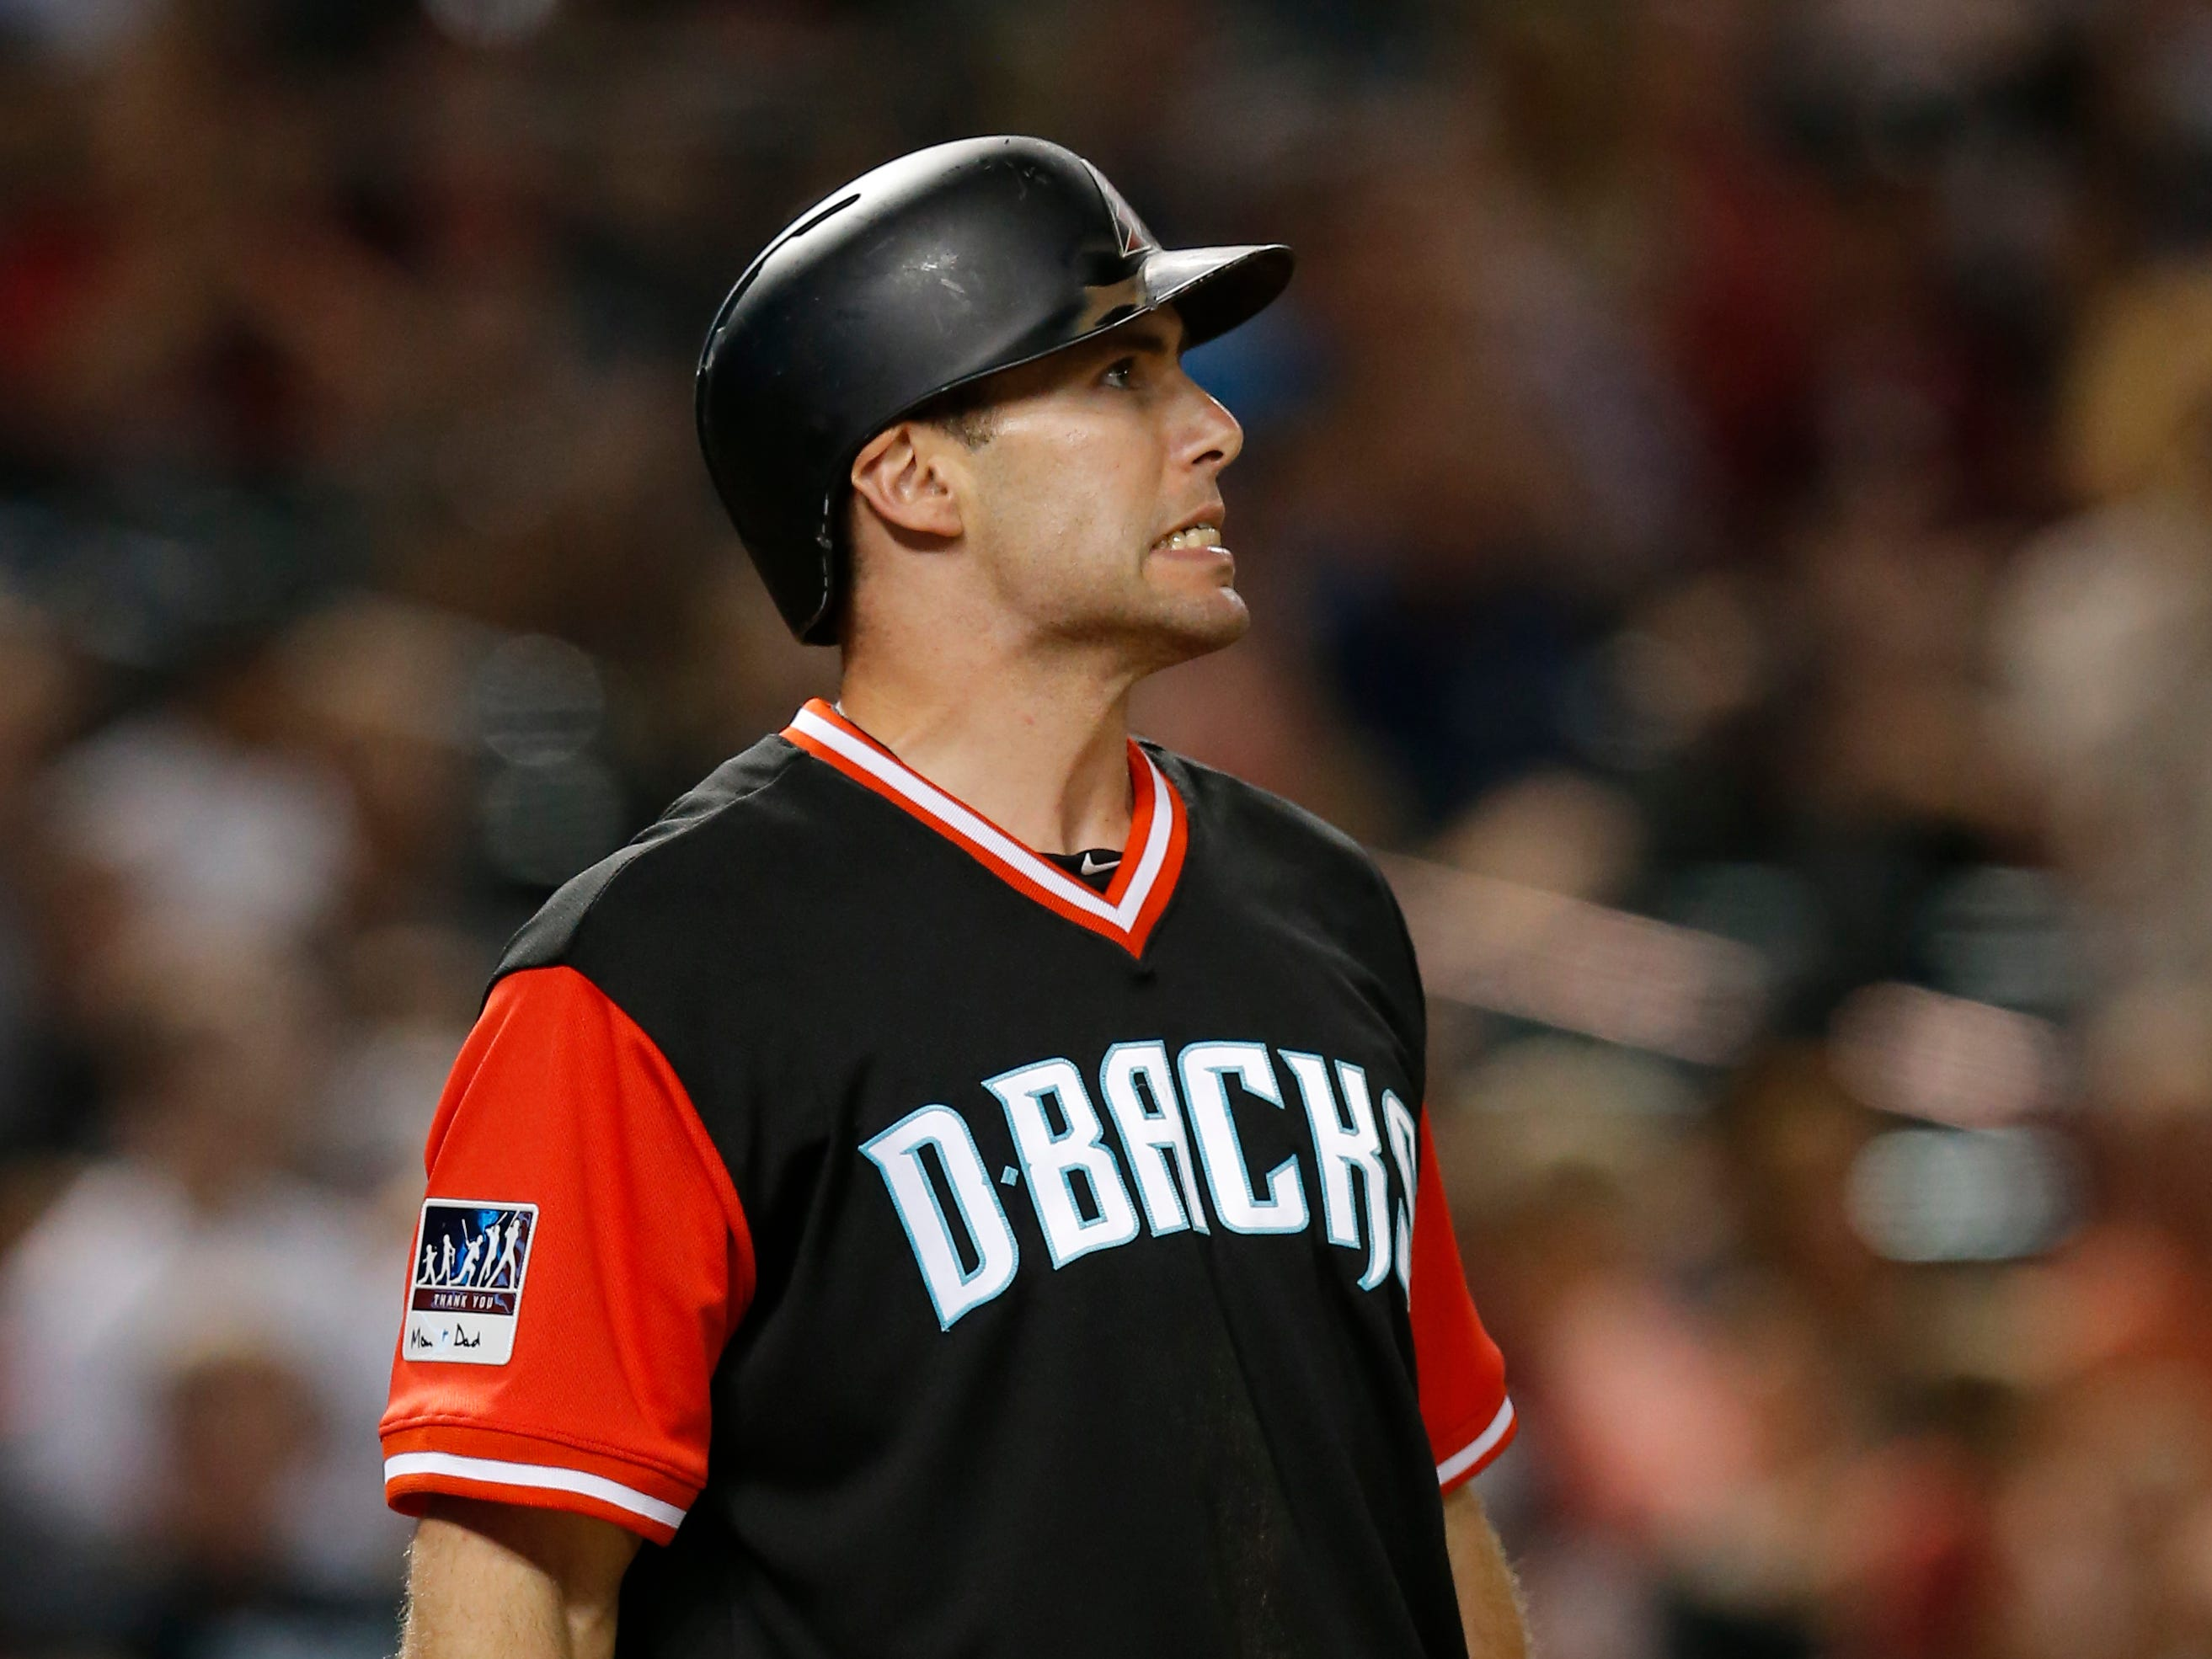 Arizona Diamondbacks' Paul Goldschmidt reacts after striking out in the eighth inning of the team's baseball game against the Seattle Mariners, Friday, Aug. 24, 2018, in Phoenix.